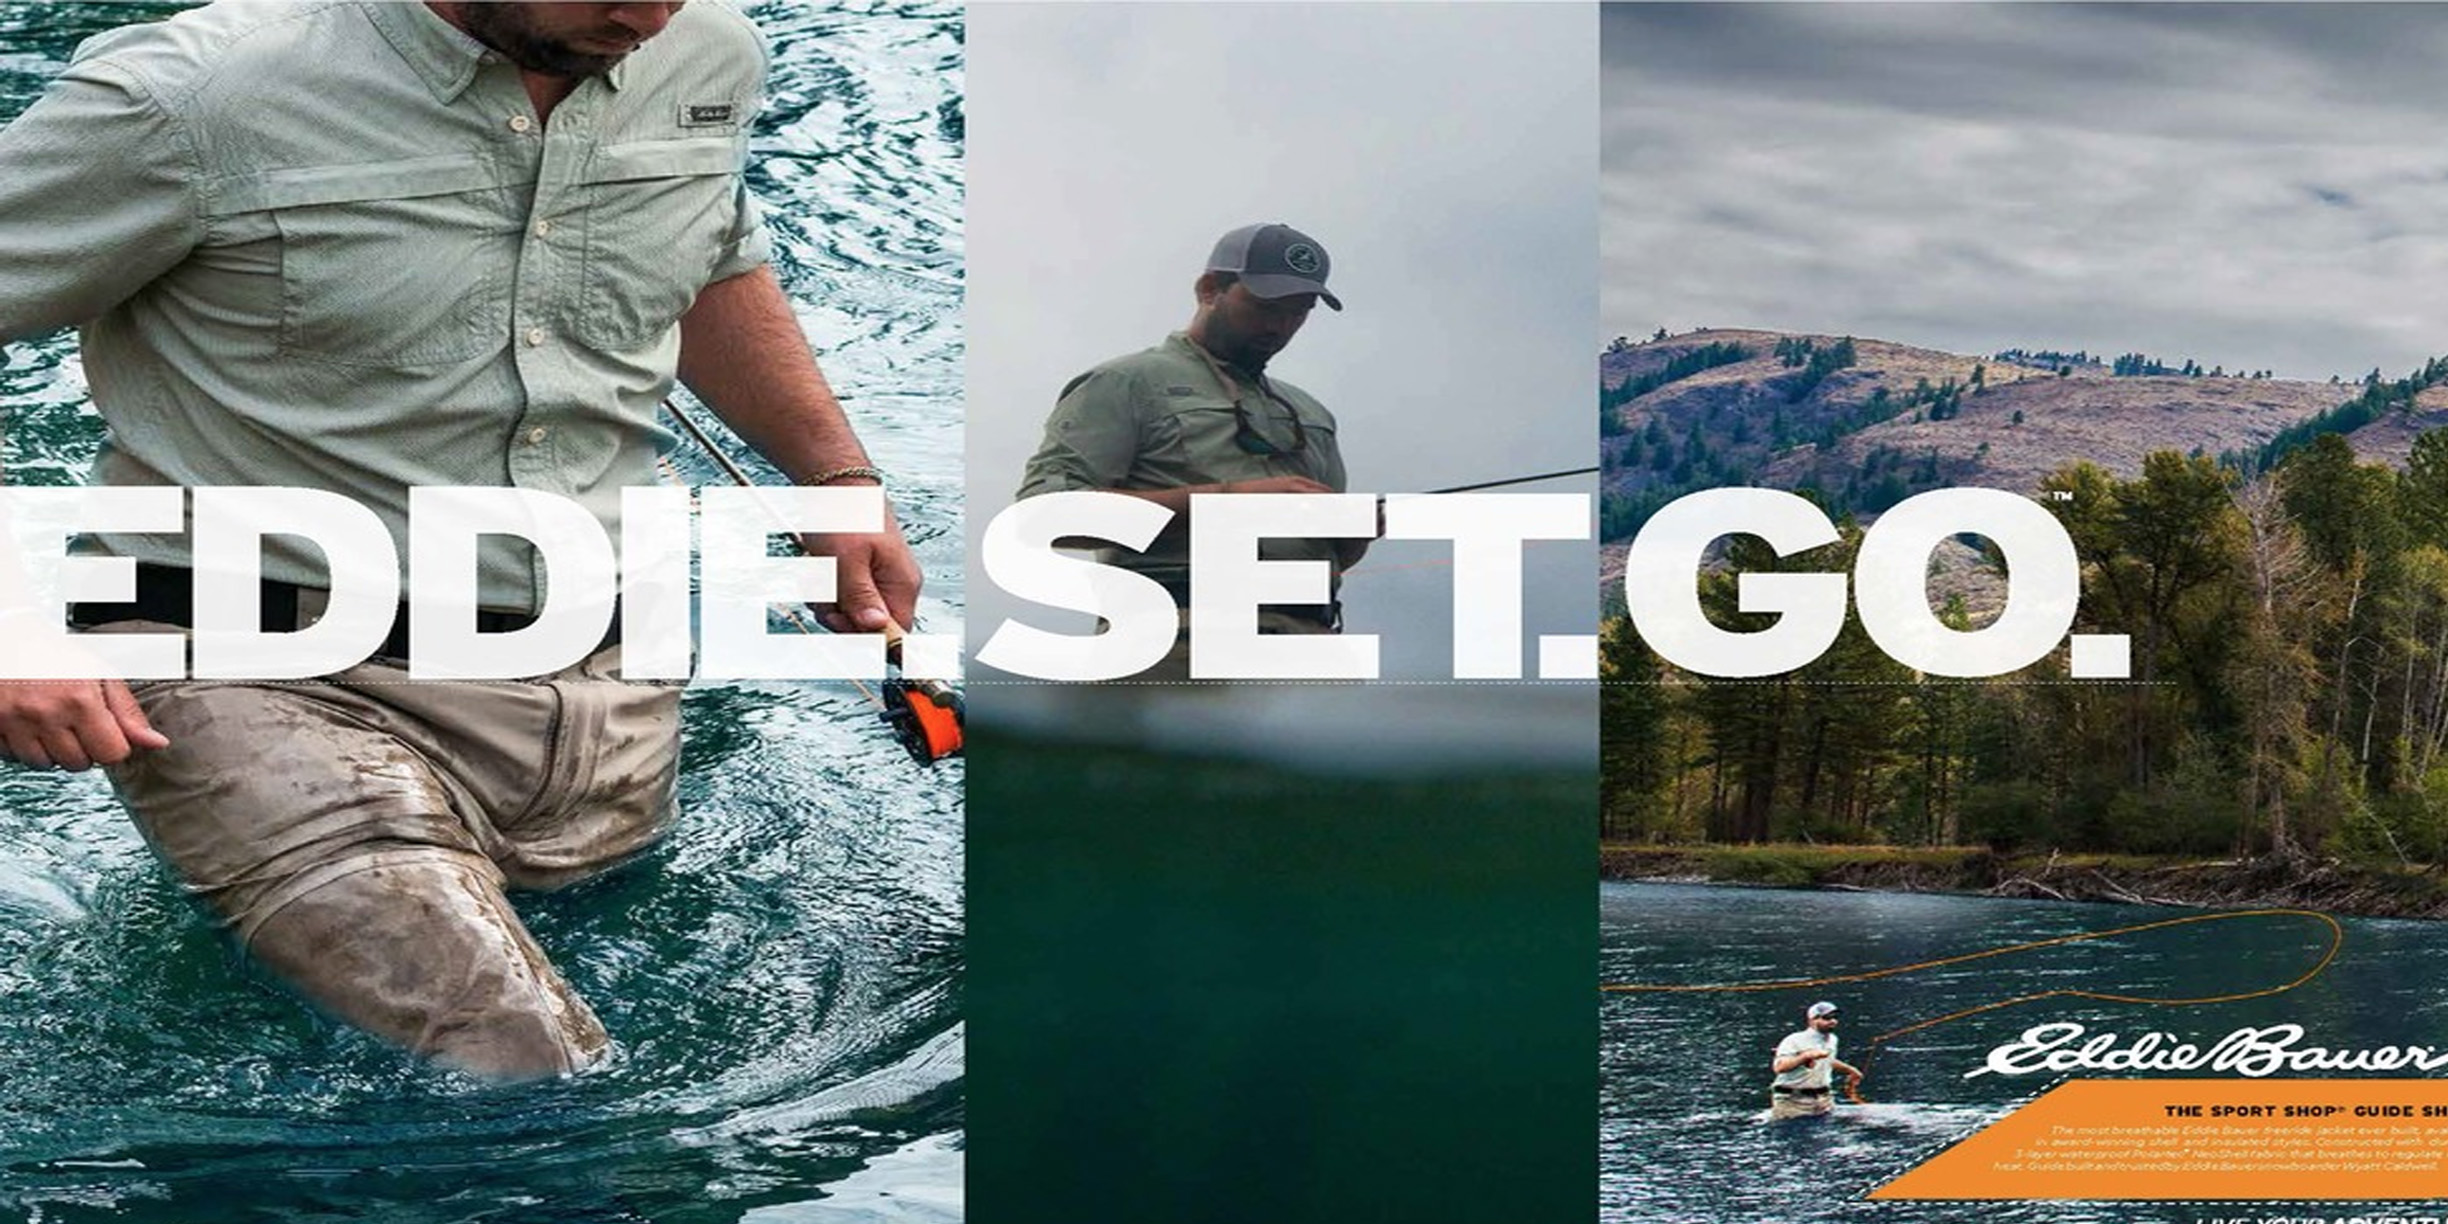 6567e46ee5 Eddie Bauer has deals from $7: t-shirts, shorts, outerwear, accessories &  more - 9to5Toys